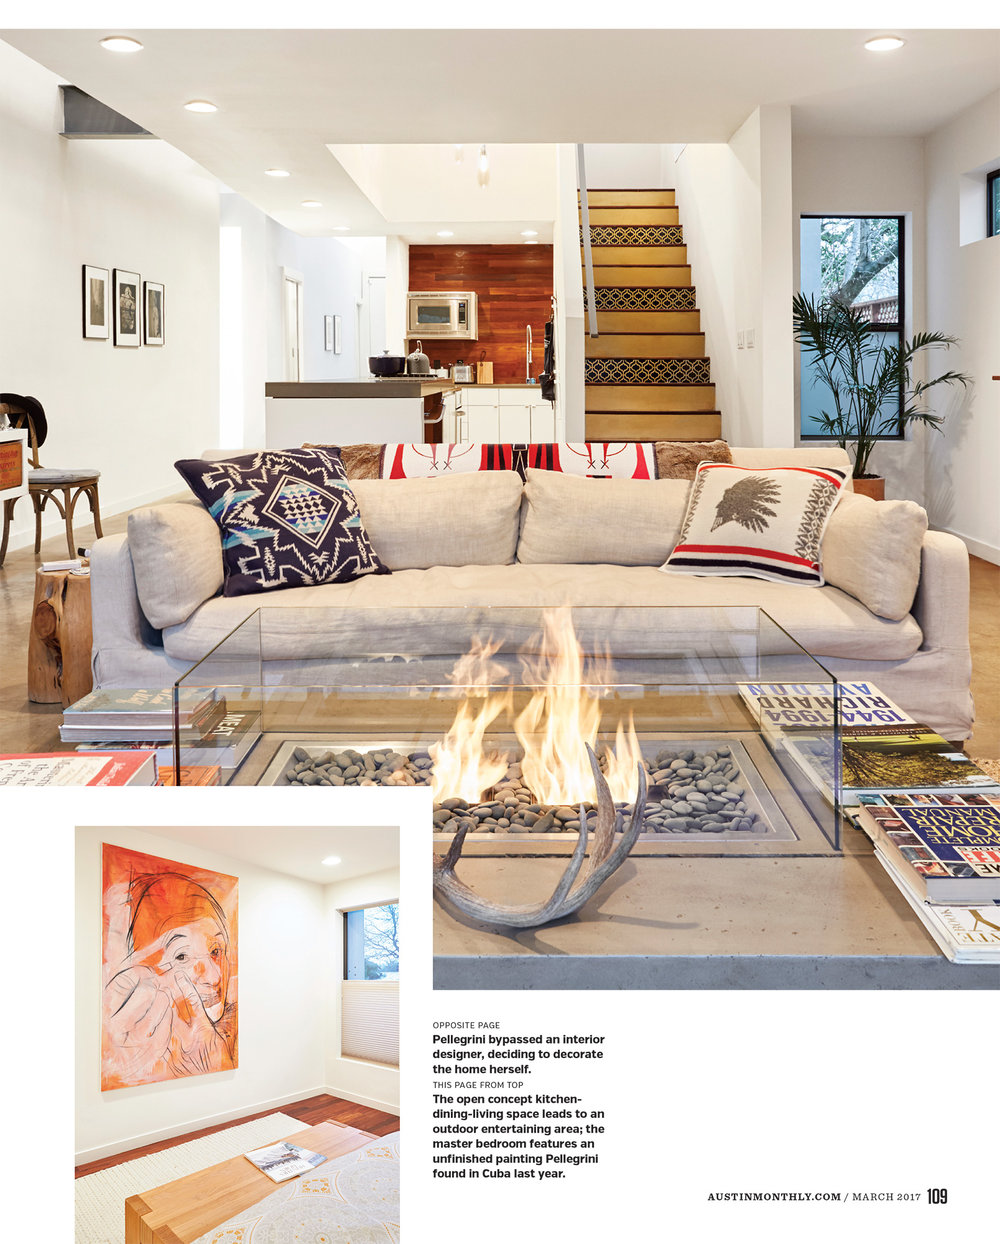 Austin Monthly // Habitat Feature // March 2017